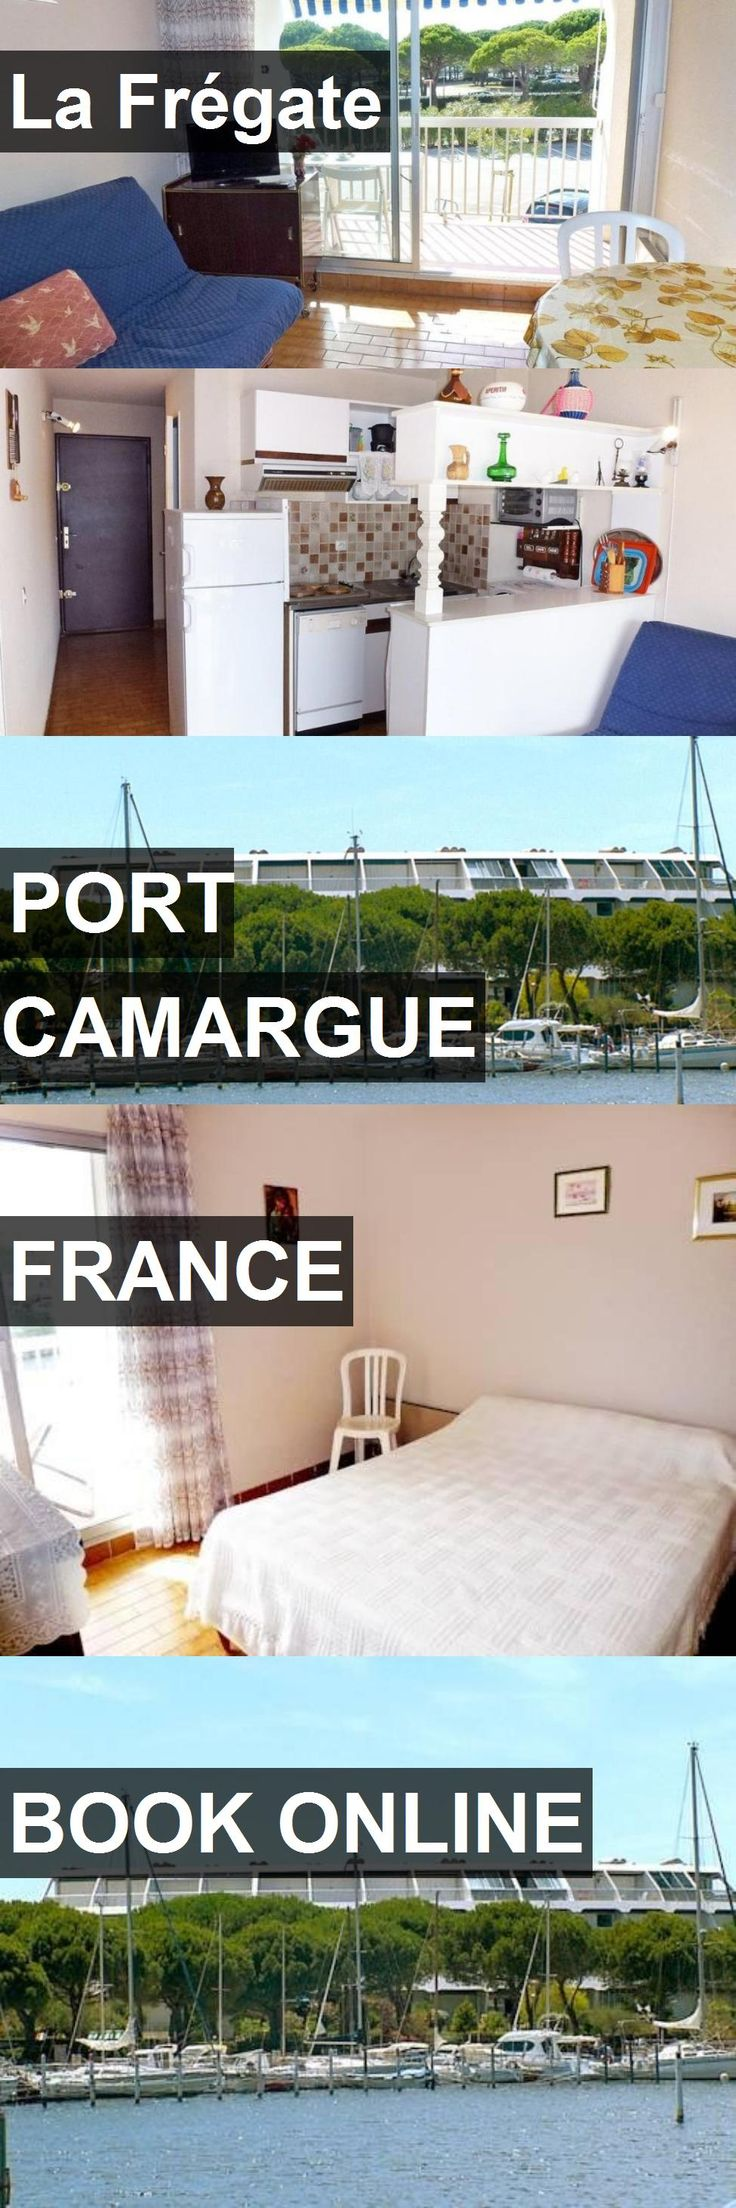 Hotel La Frégate in Port Camargue, France. For more information, photos, reviews and best prices please follow the link. #France #PortCamargue #travel #vacation #hotel